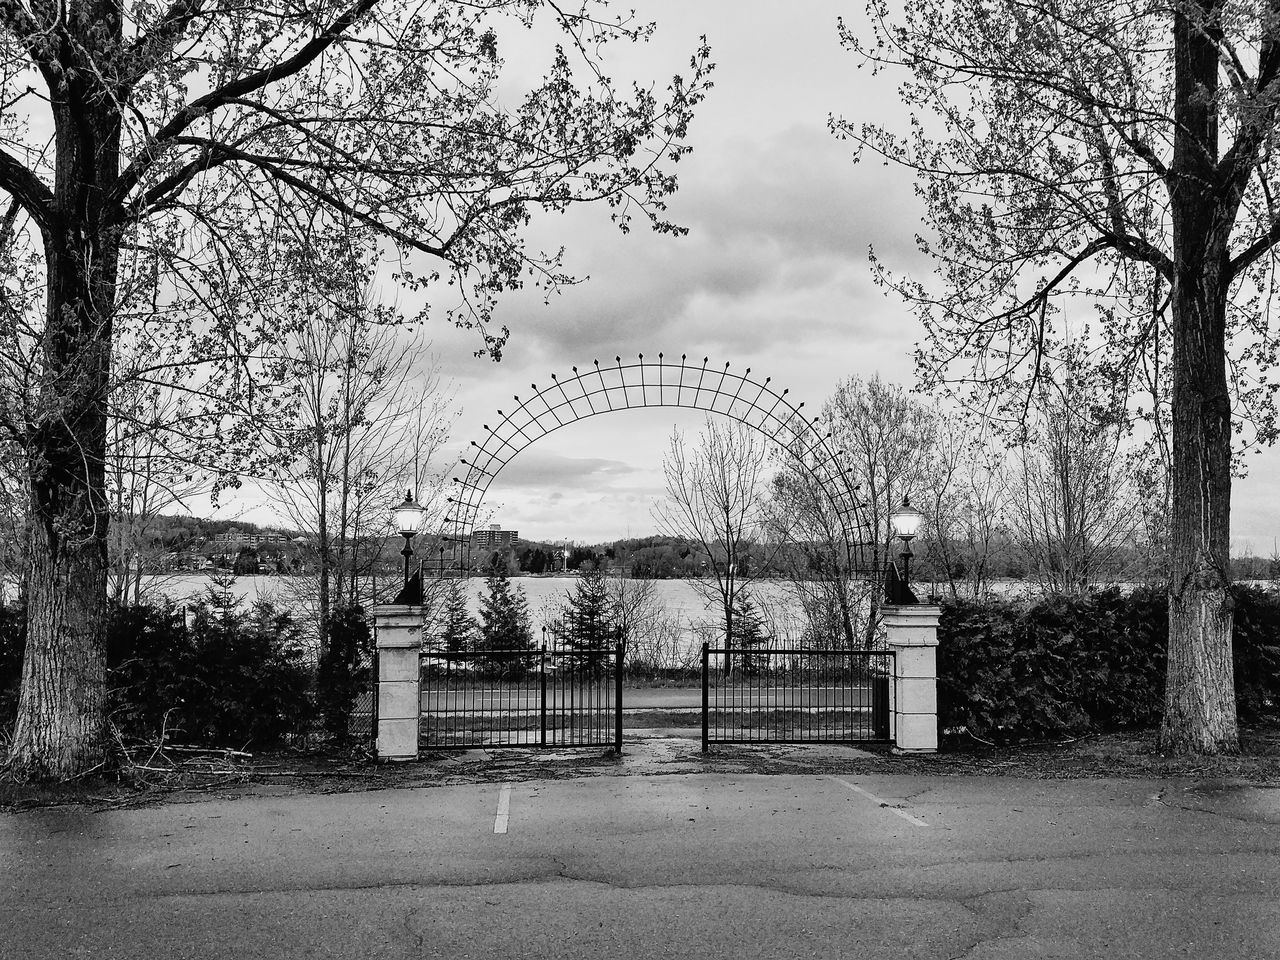 Sky No People Day Outdoors Nature Arch Railing Gate Black And White